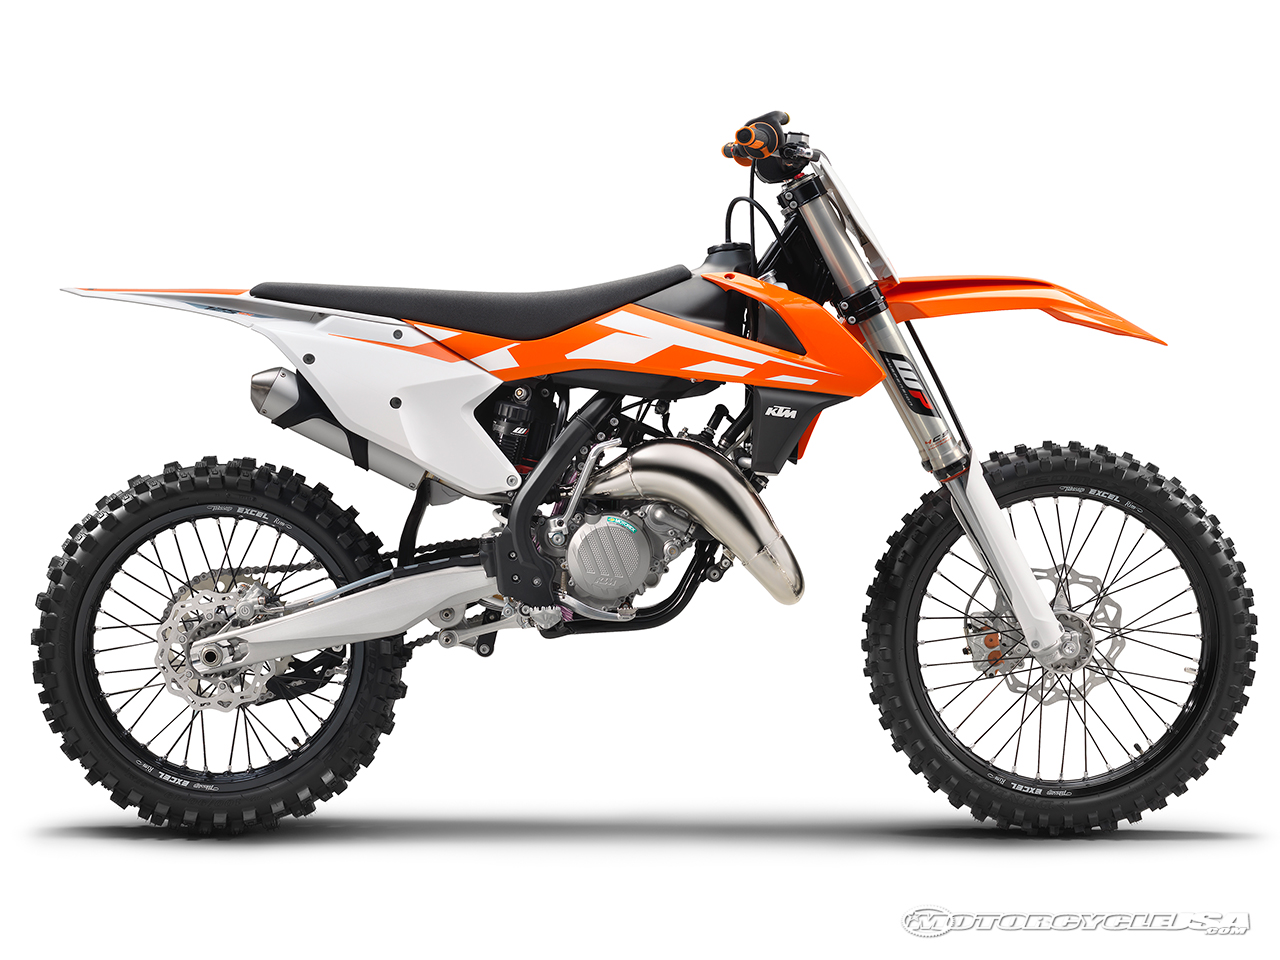 2002 ktm 125 exc pics specs and information. Black Bedroom Furniture Sets. Home Design Ideas